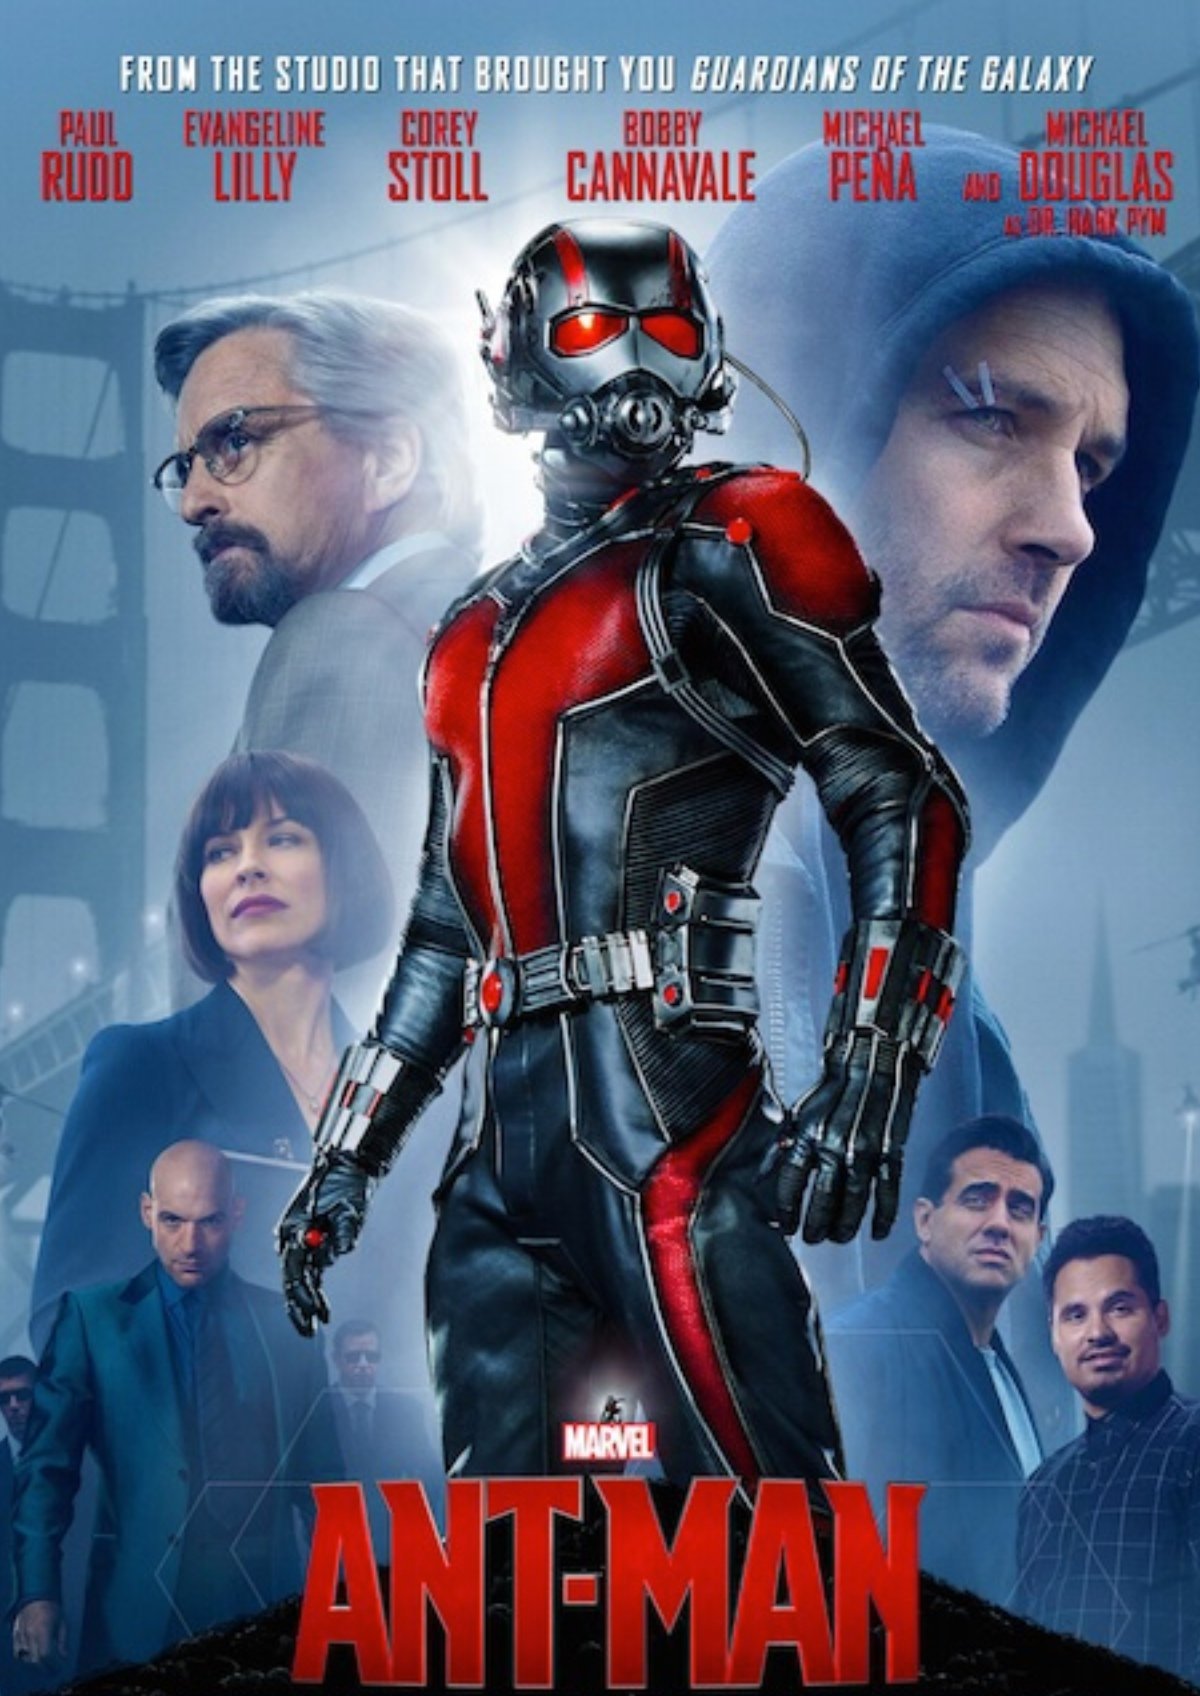 'Ant-Man' movie poster